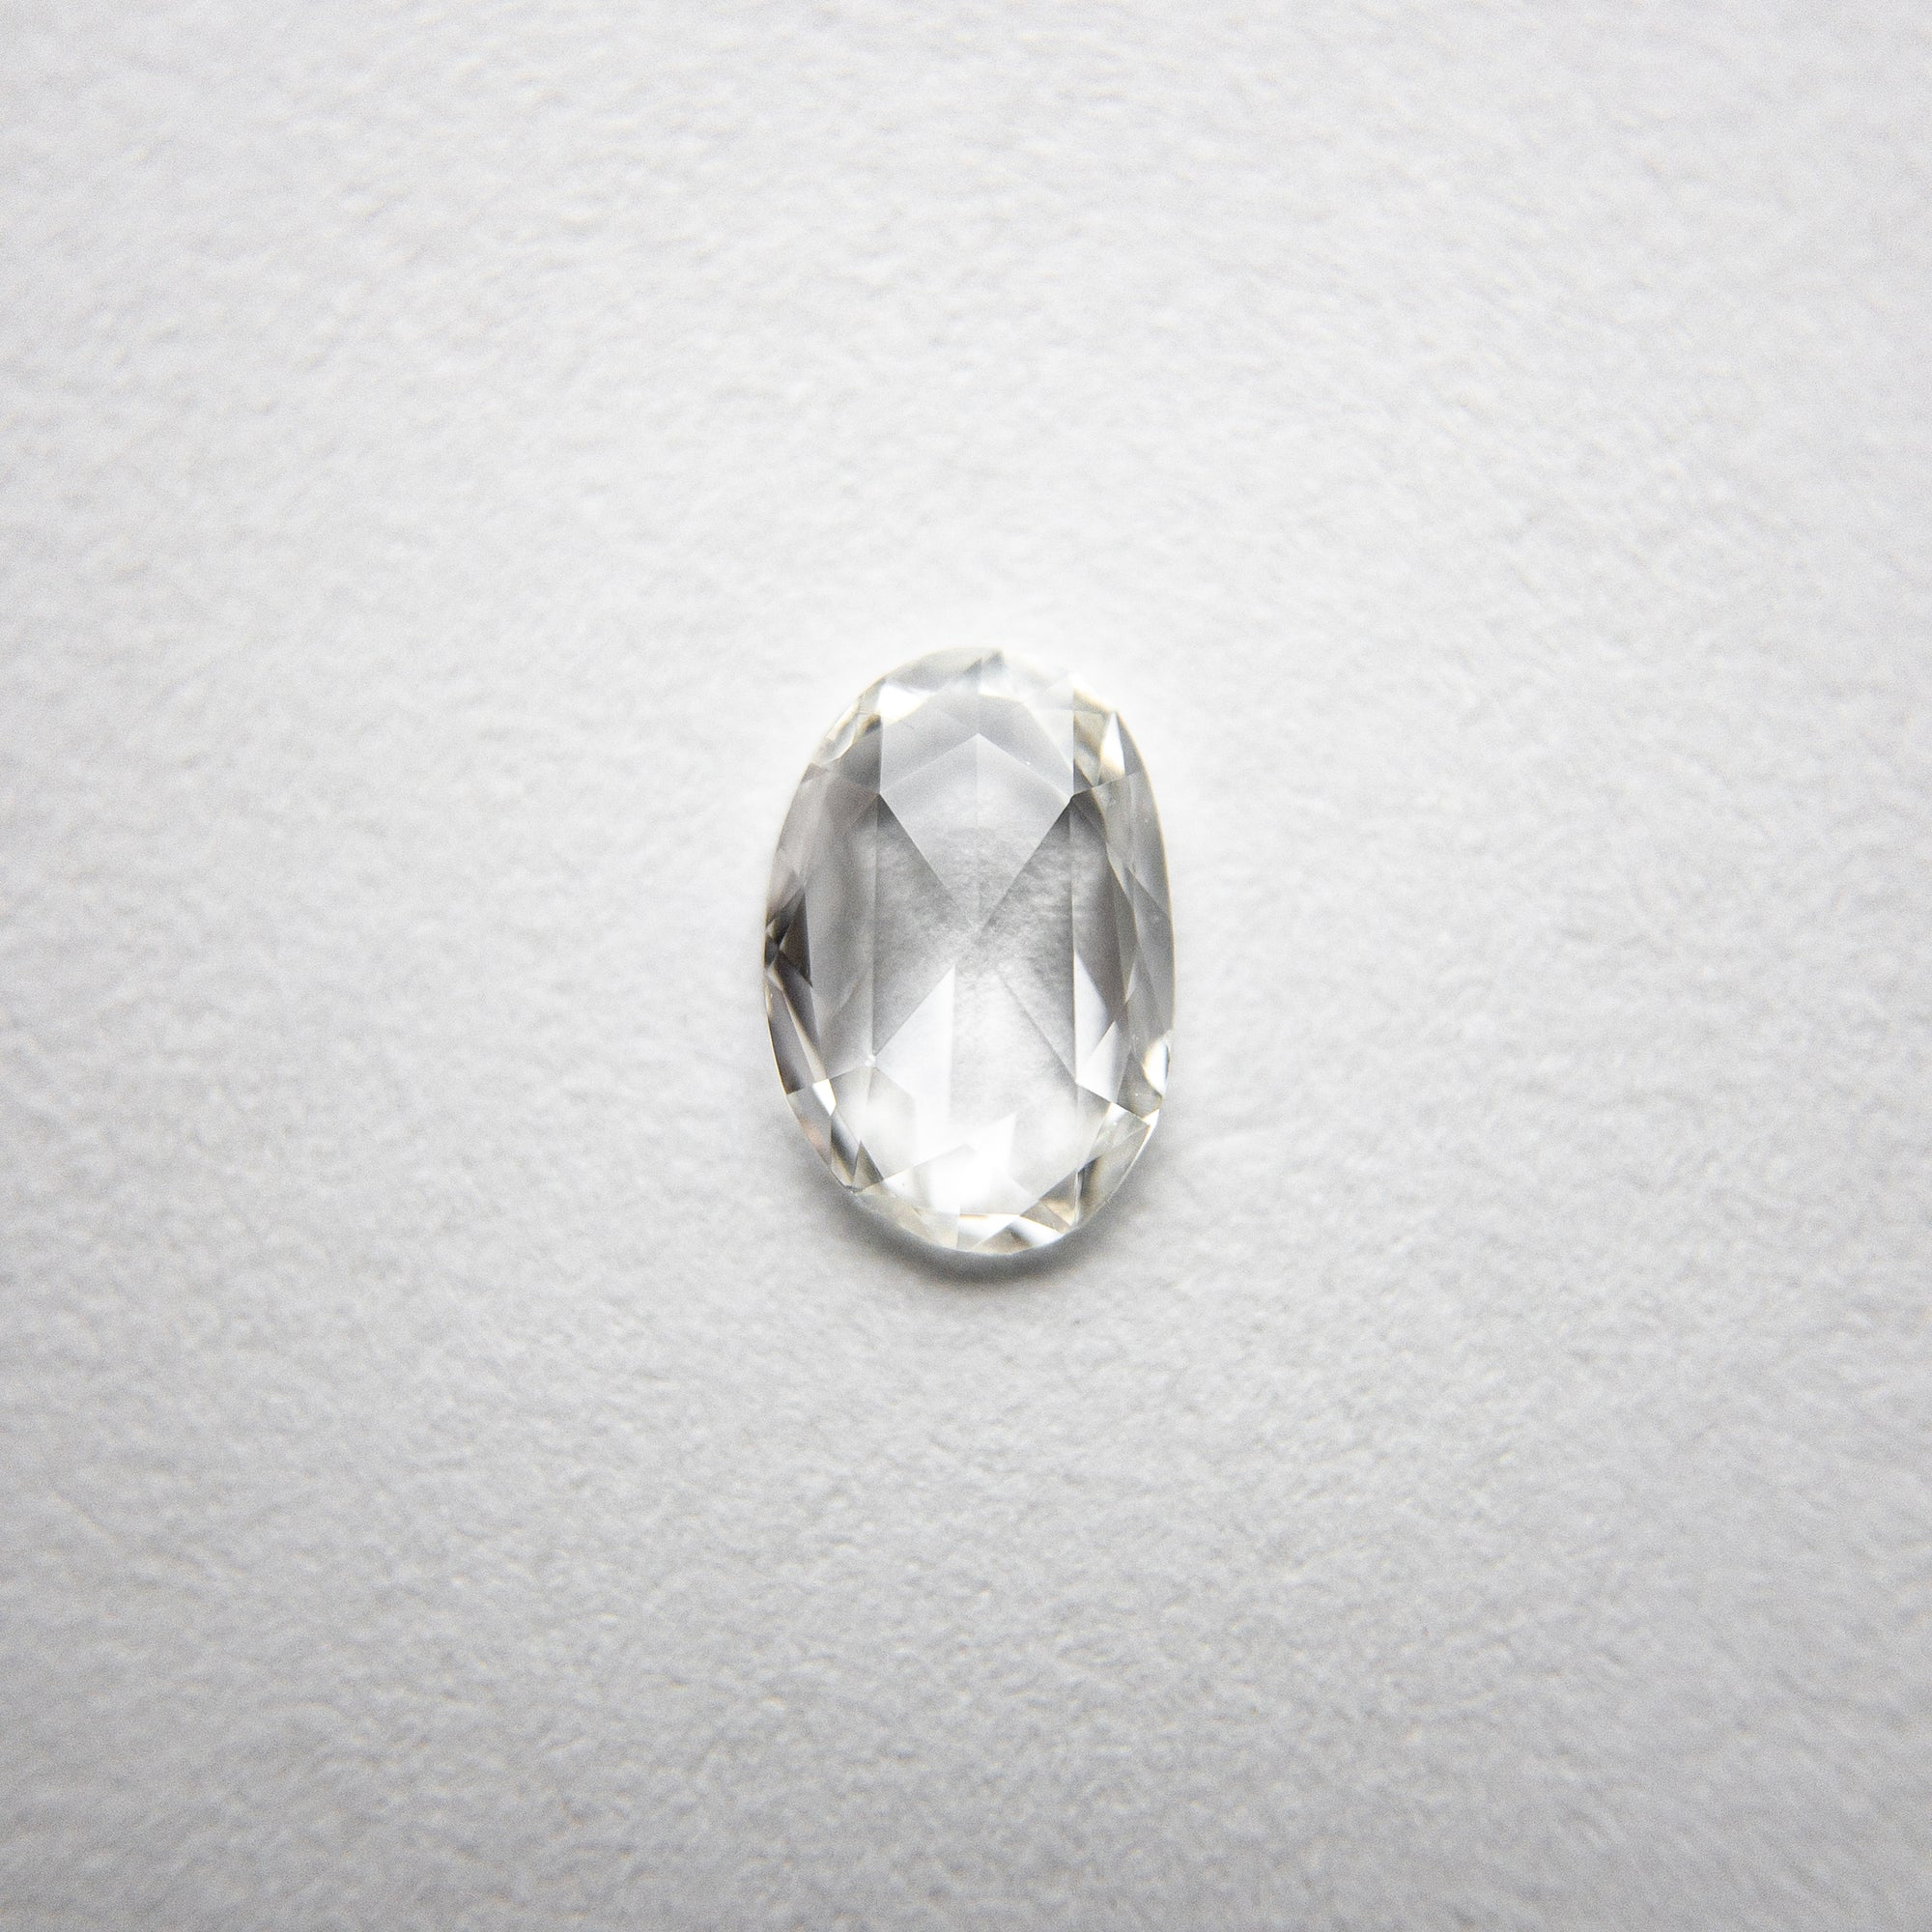 0.28ct 5.87x4.00x1.41mm Oval Rosecut 18238-02